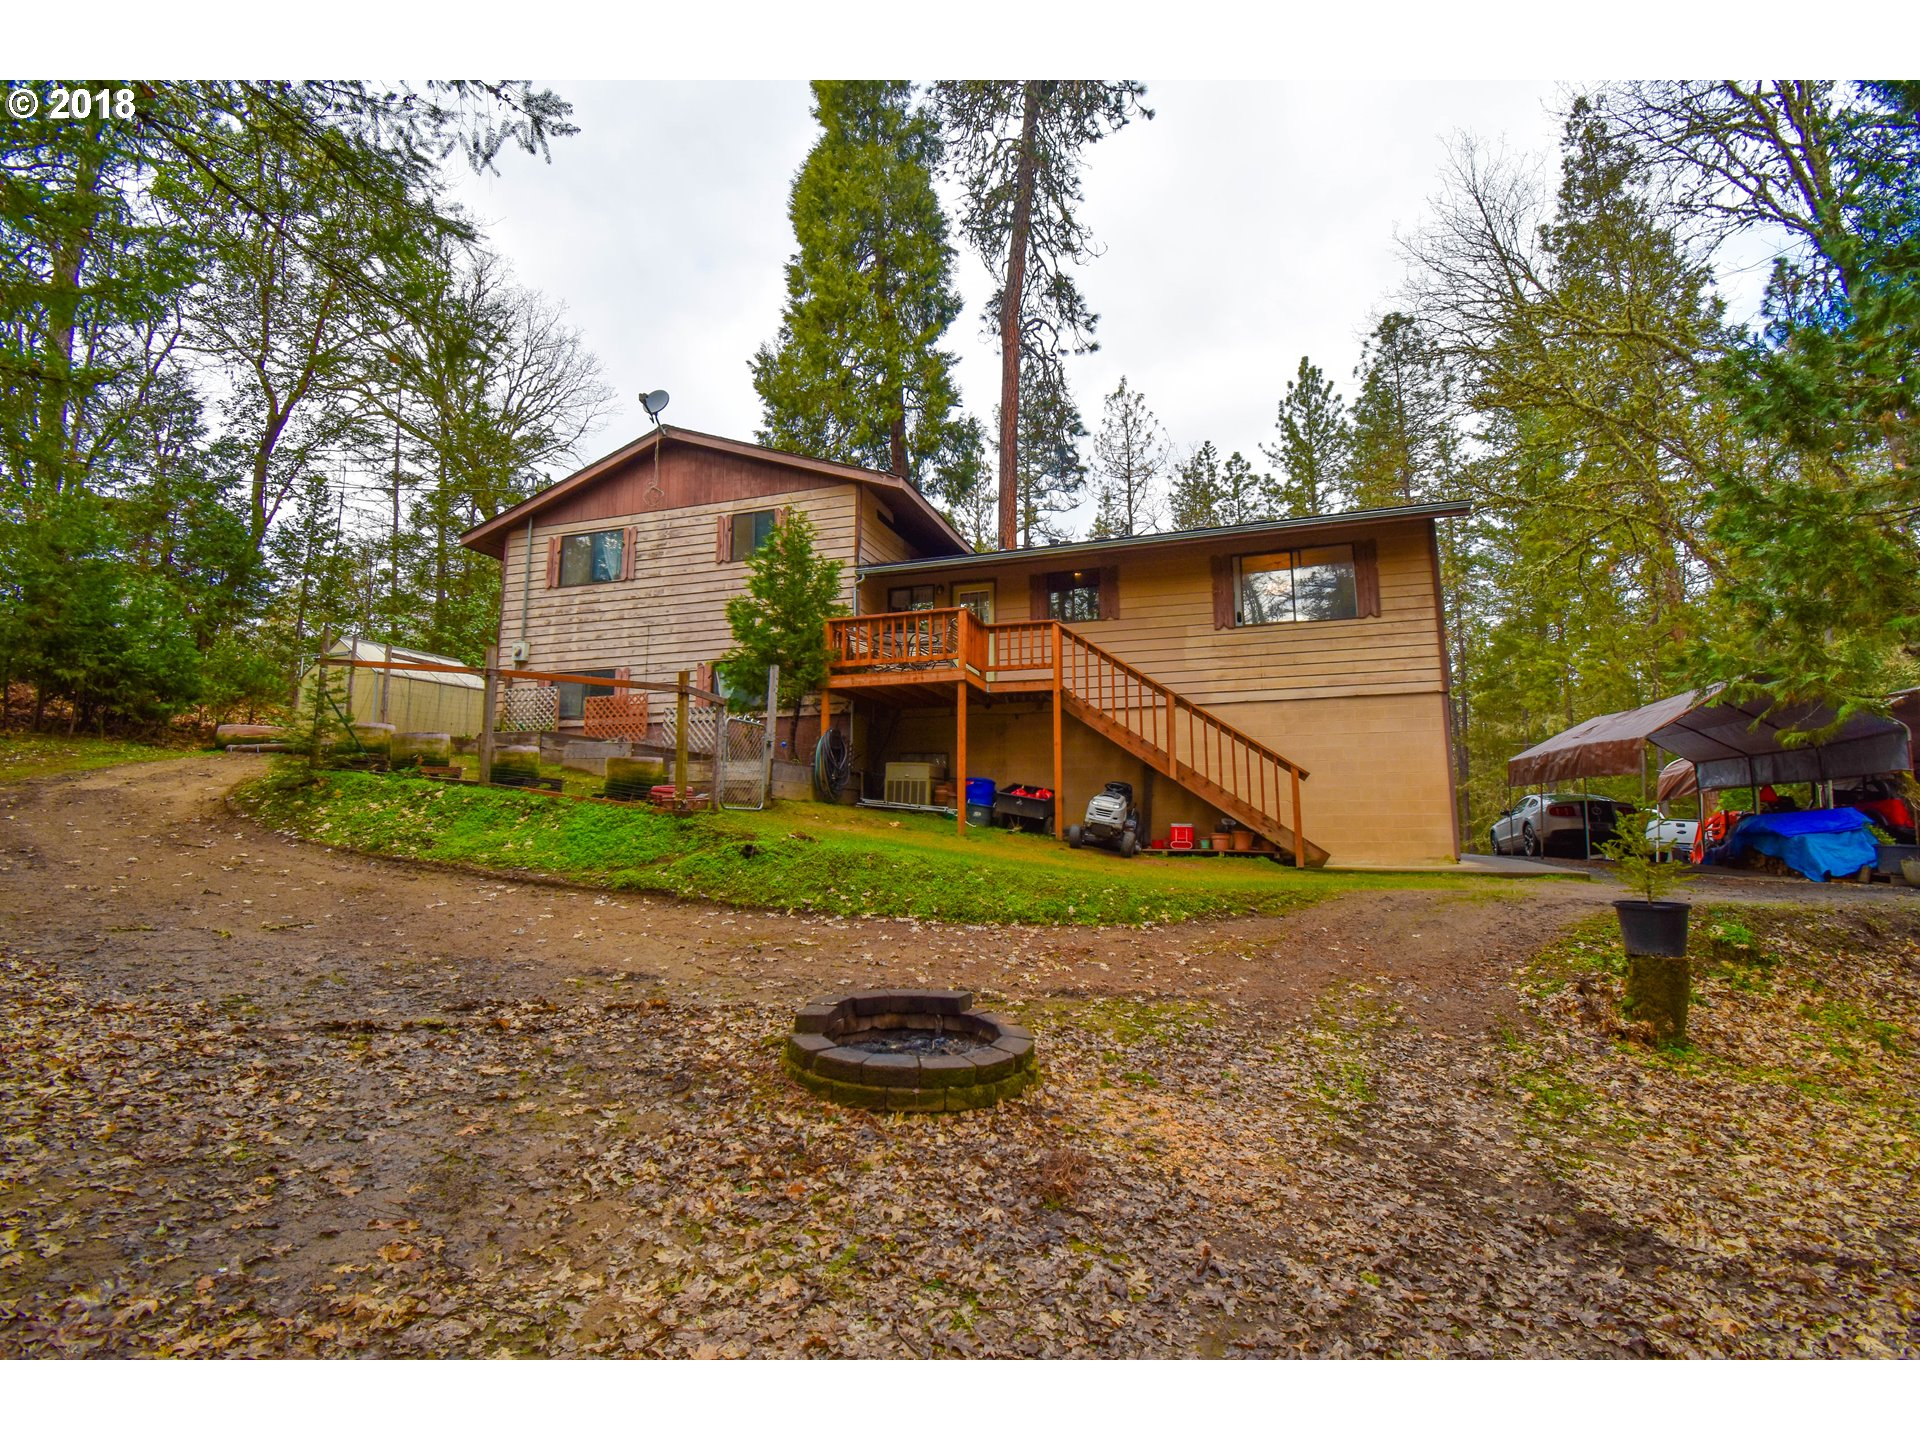 Grants Pass, OR 4 Bedroom Home For Sale